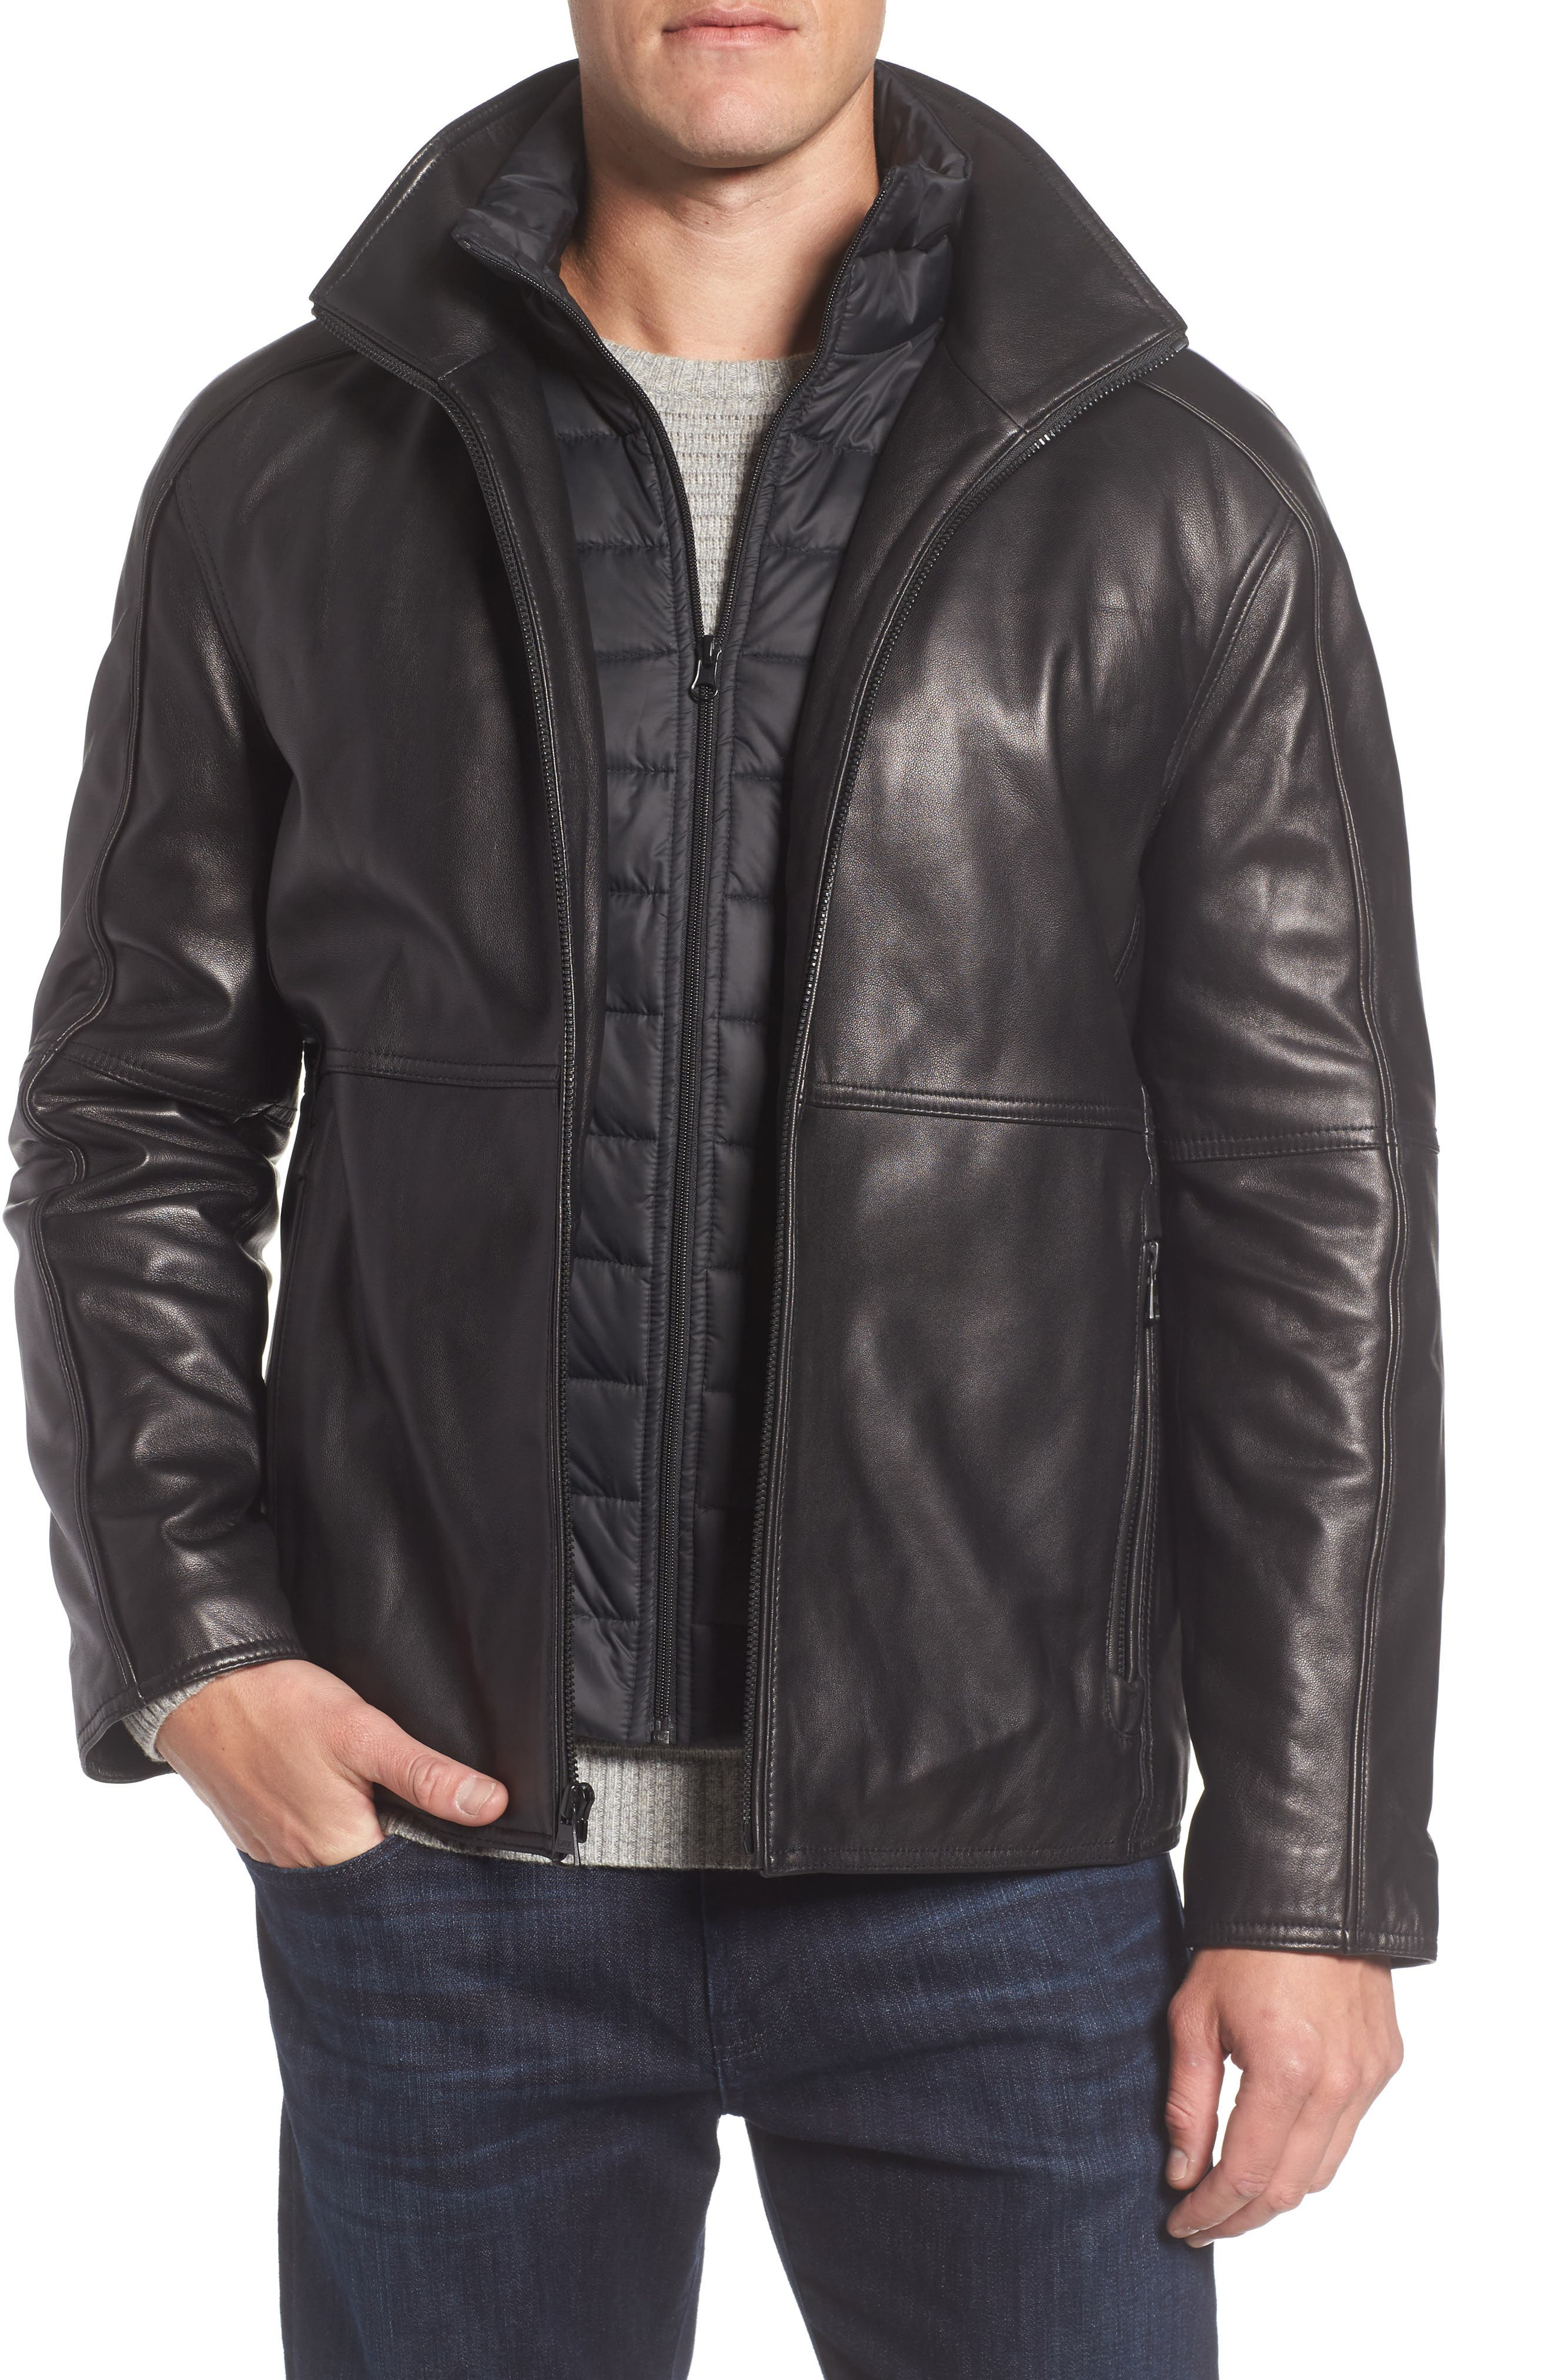 Main Image - Marc New York Leather Jacket with Quilted Insert